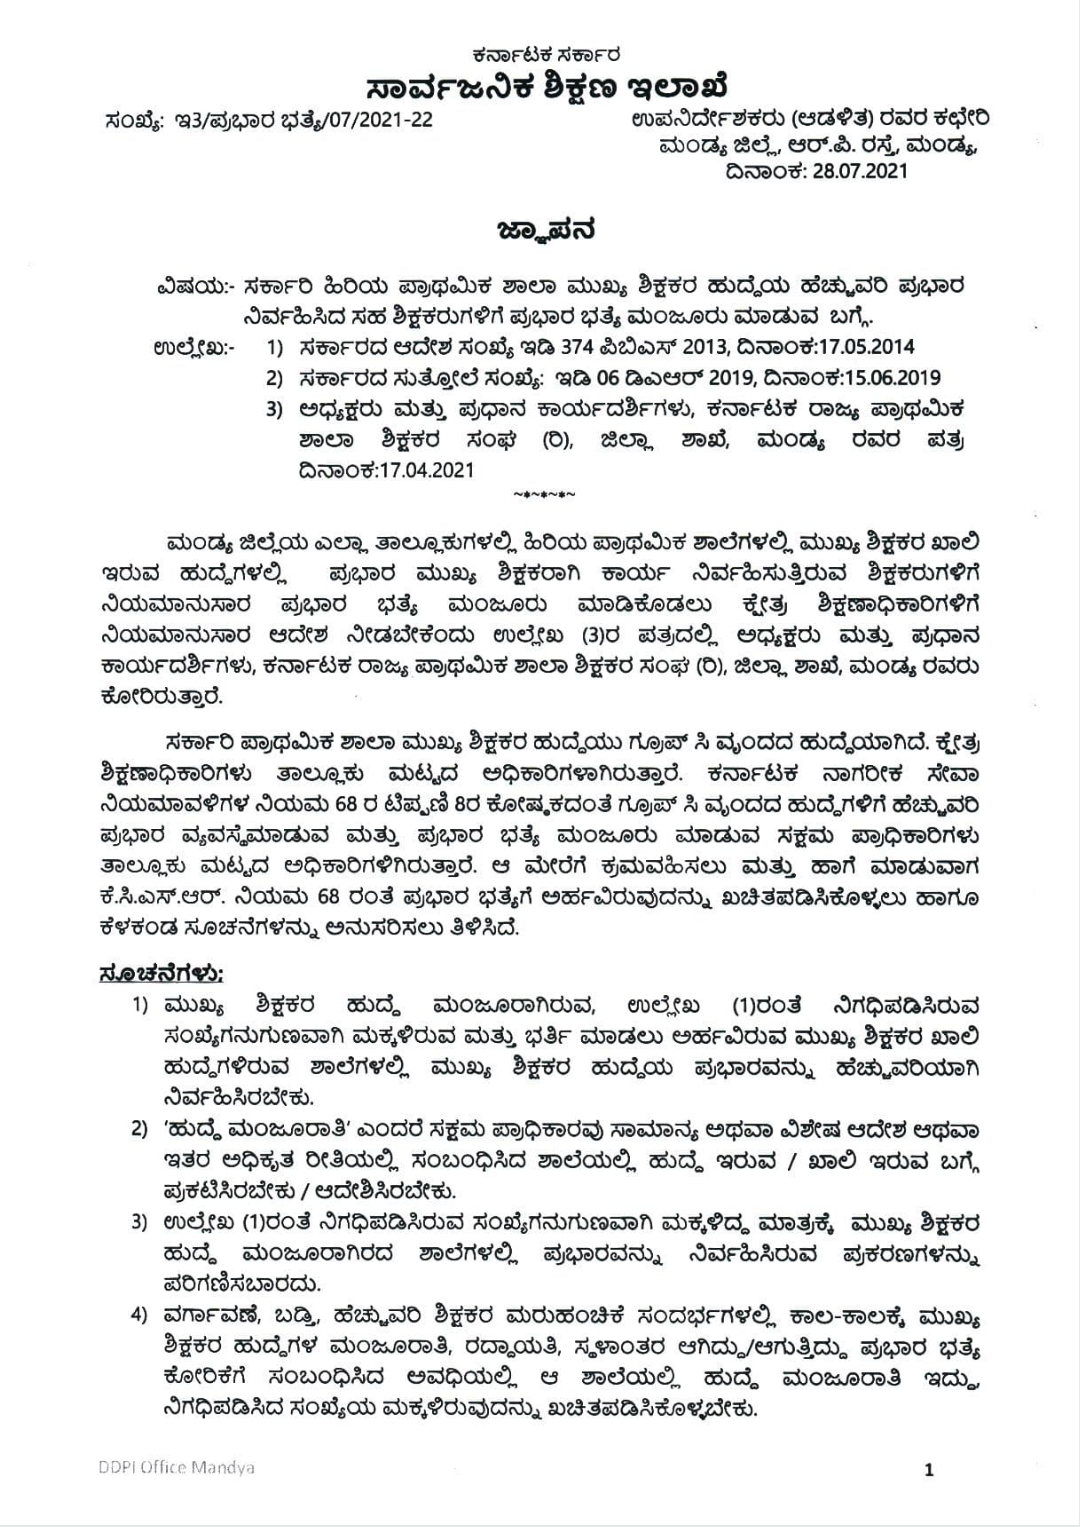 Ordinance to grant allowance to co-teachers who have maintained the additional post of Head of Government Senior Primary School